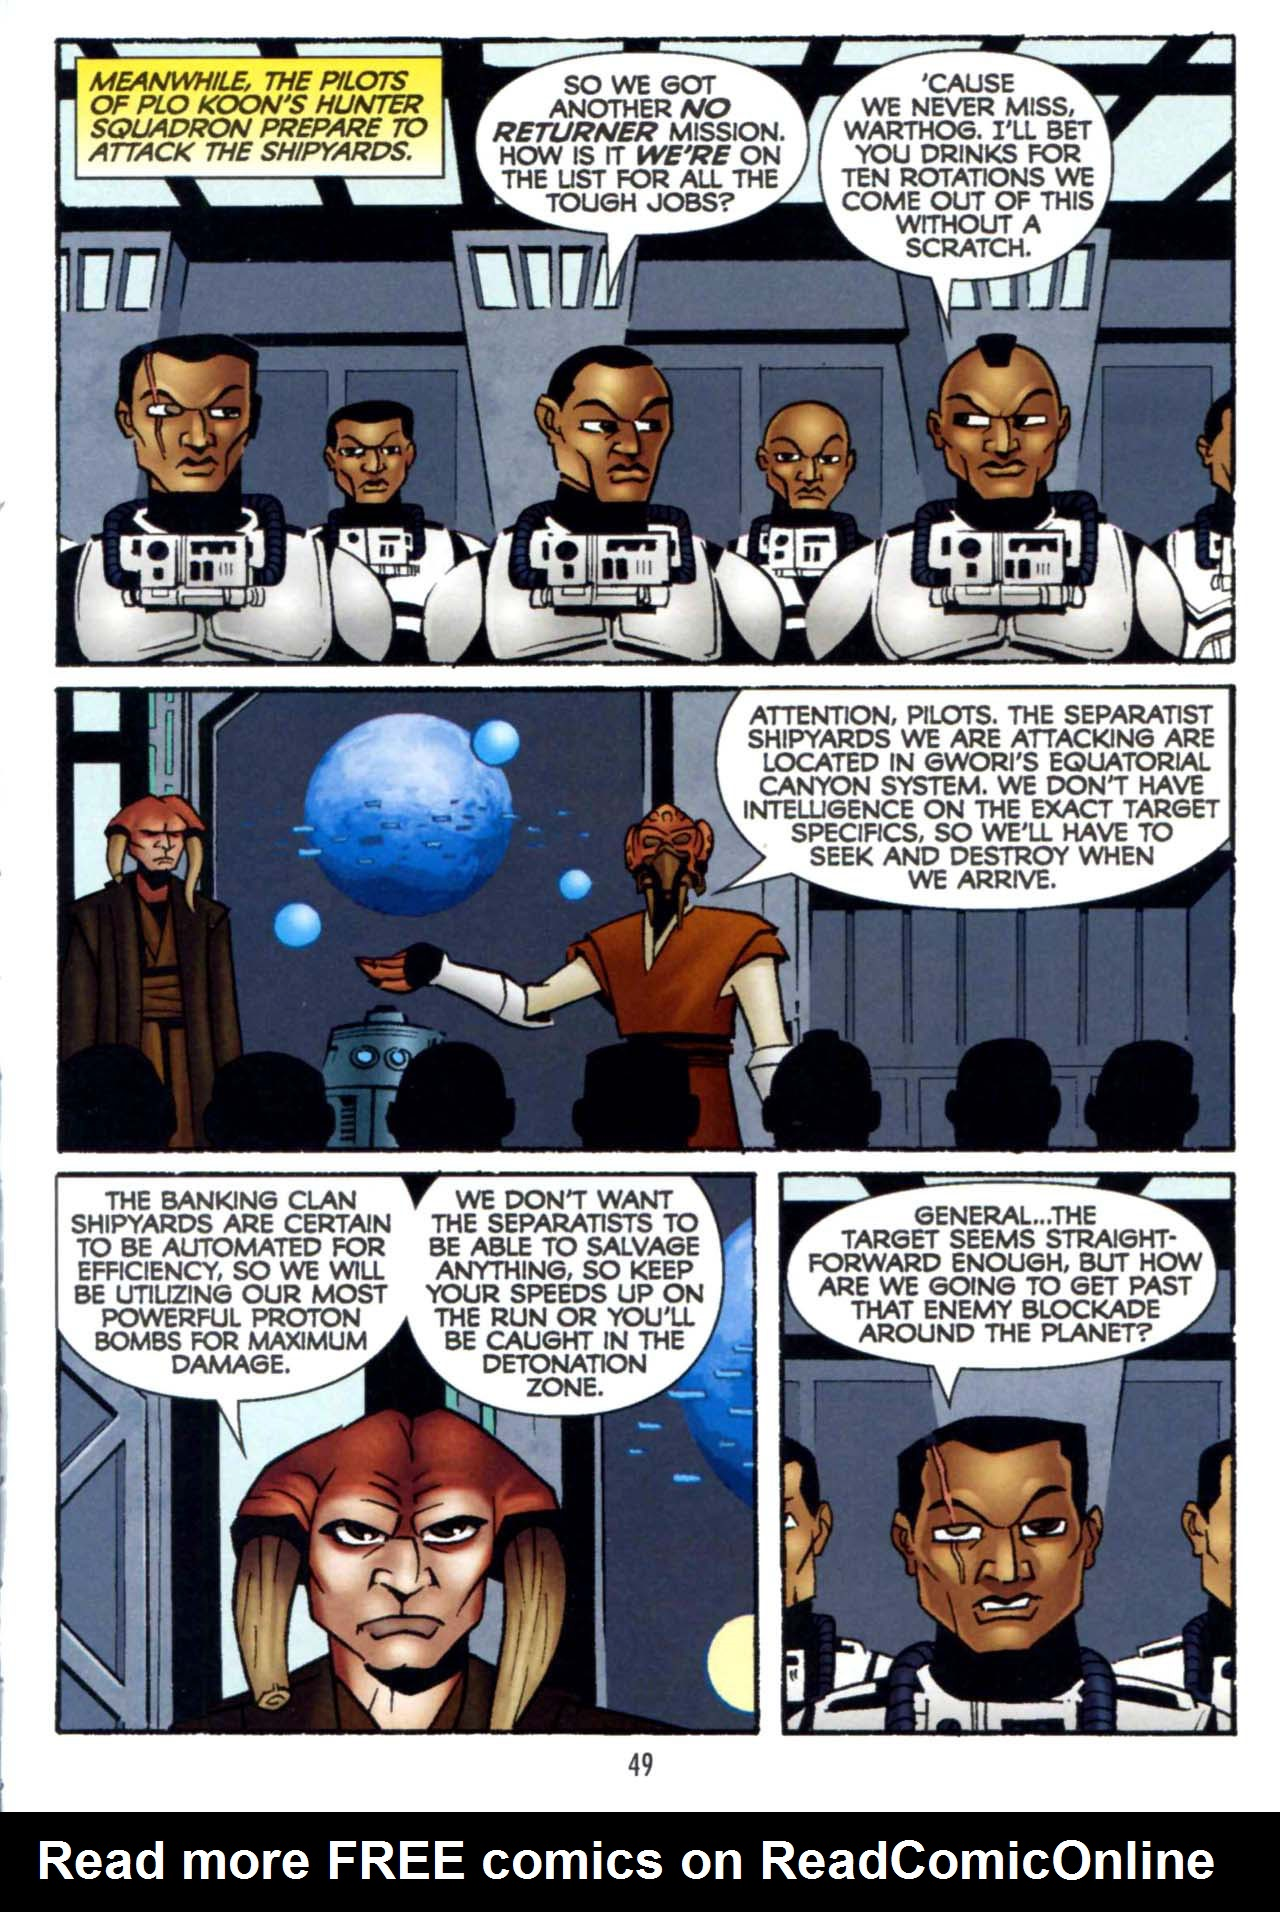 Read online Star Wars: The Clone Wars - Shipyards of Doom comic -  Issue # Full - 47